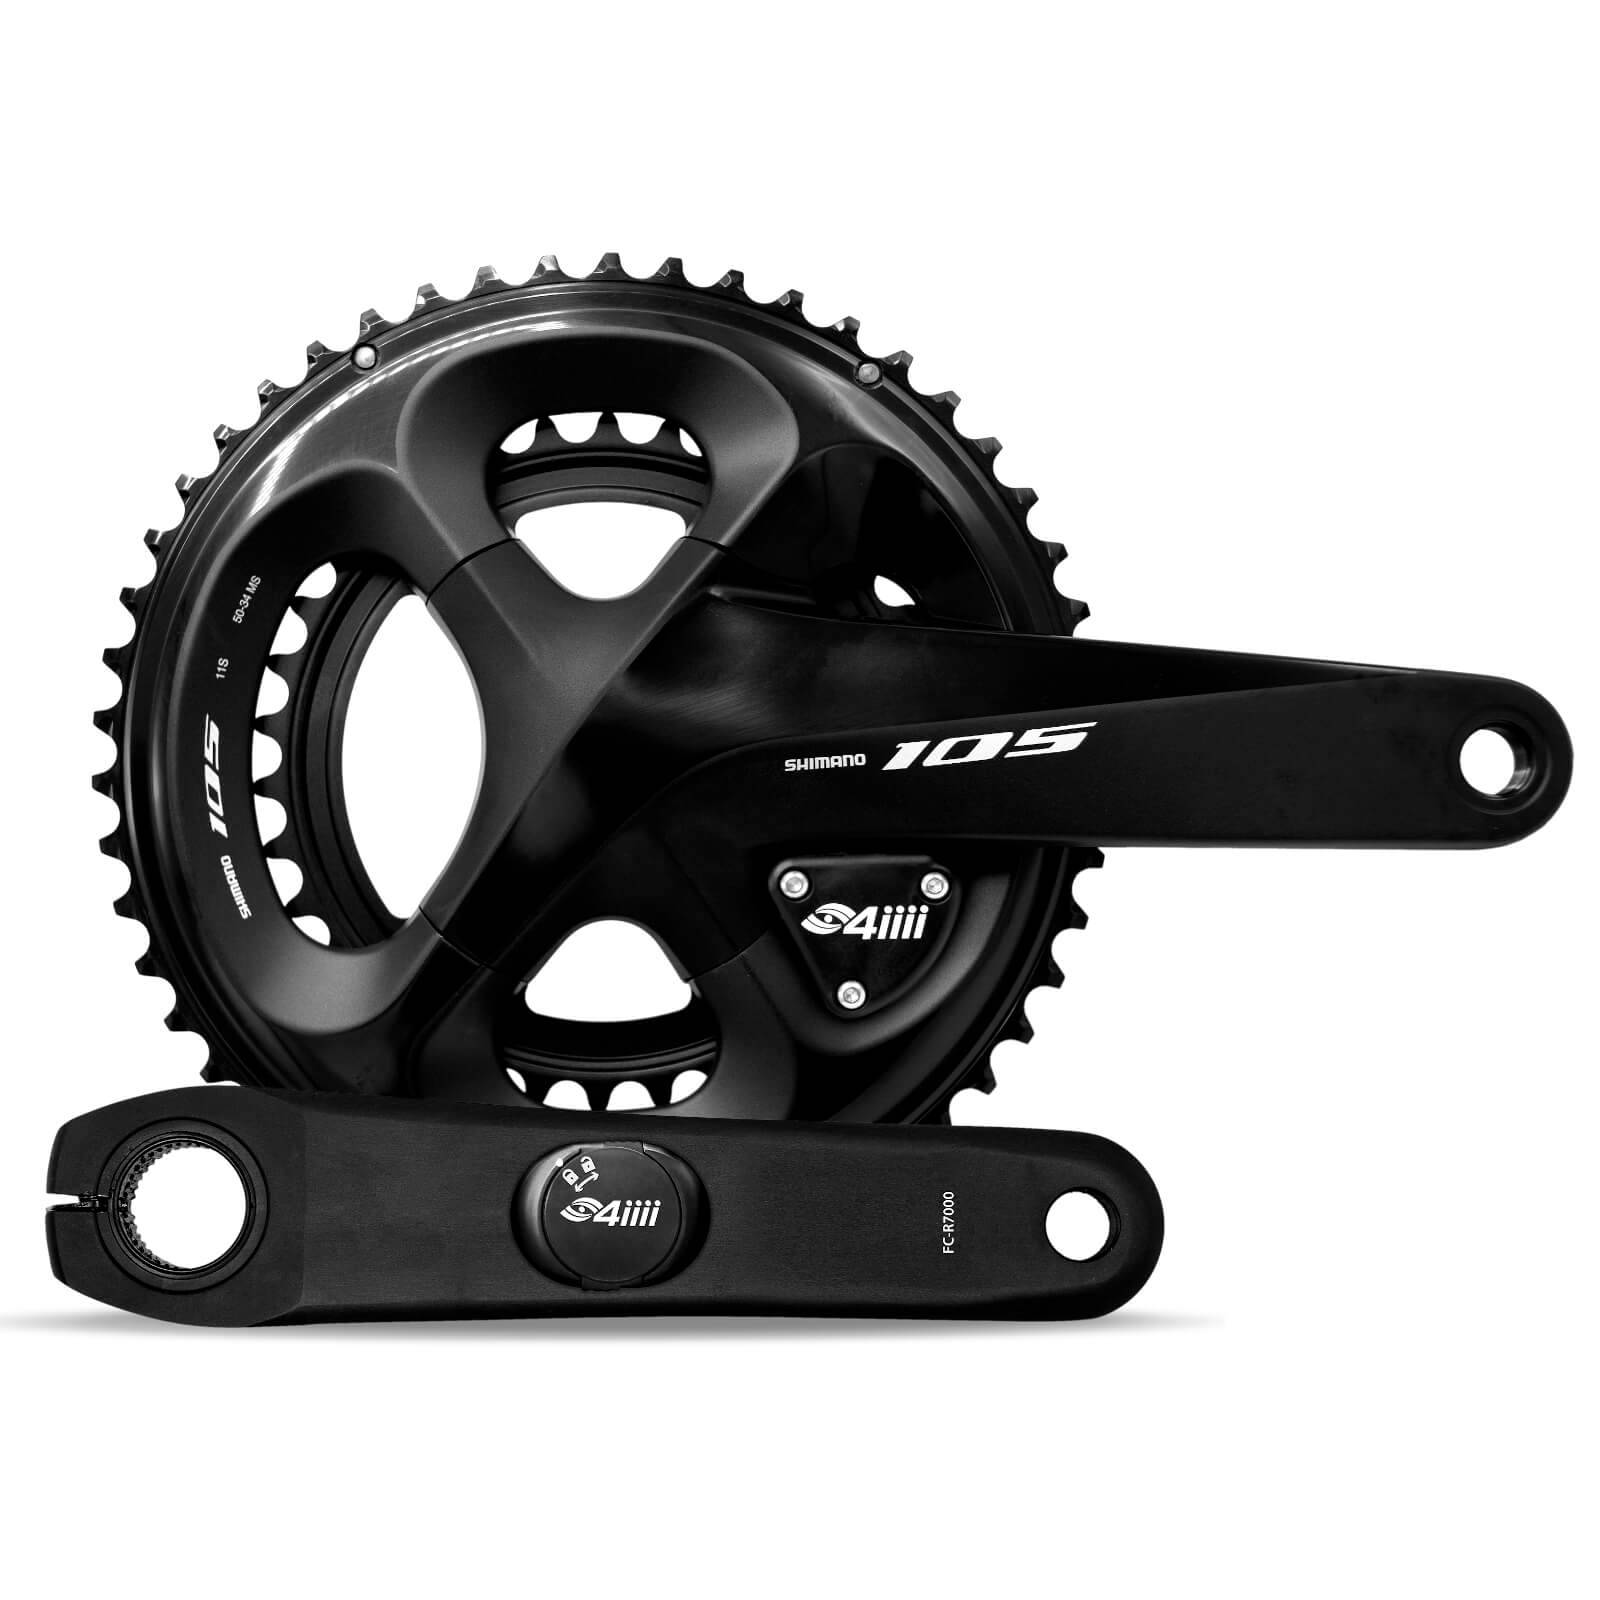 4iiii Precision Pro Dual Sided Power Meter - 105 R7000 - 175mm - 53-39T;